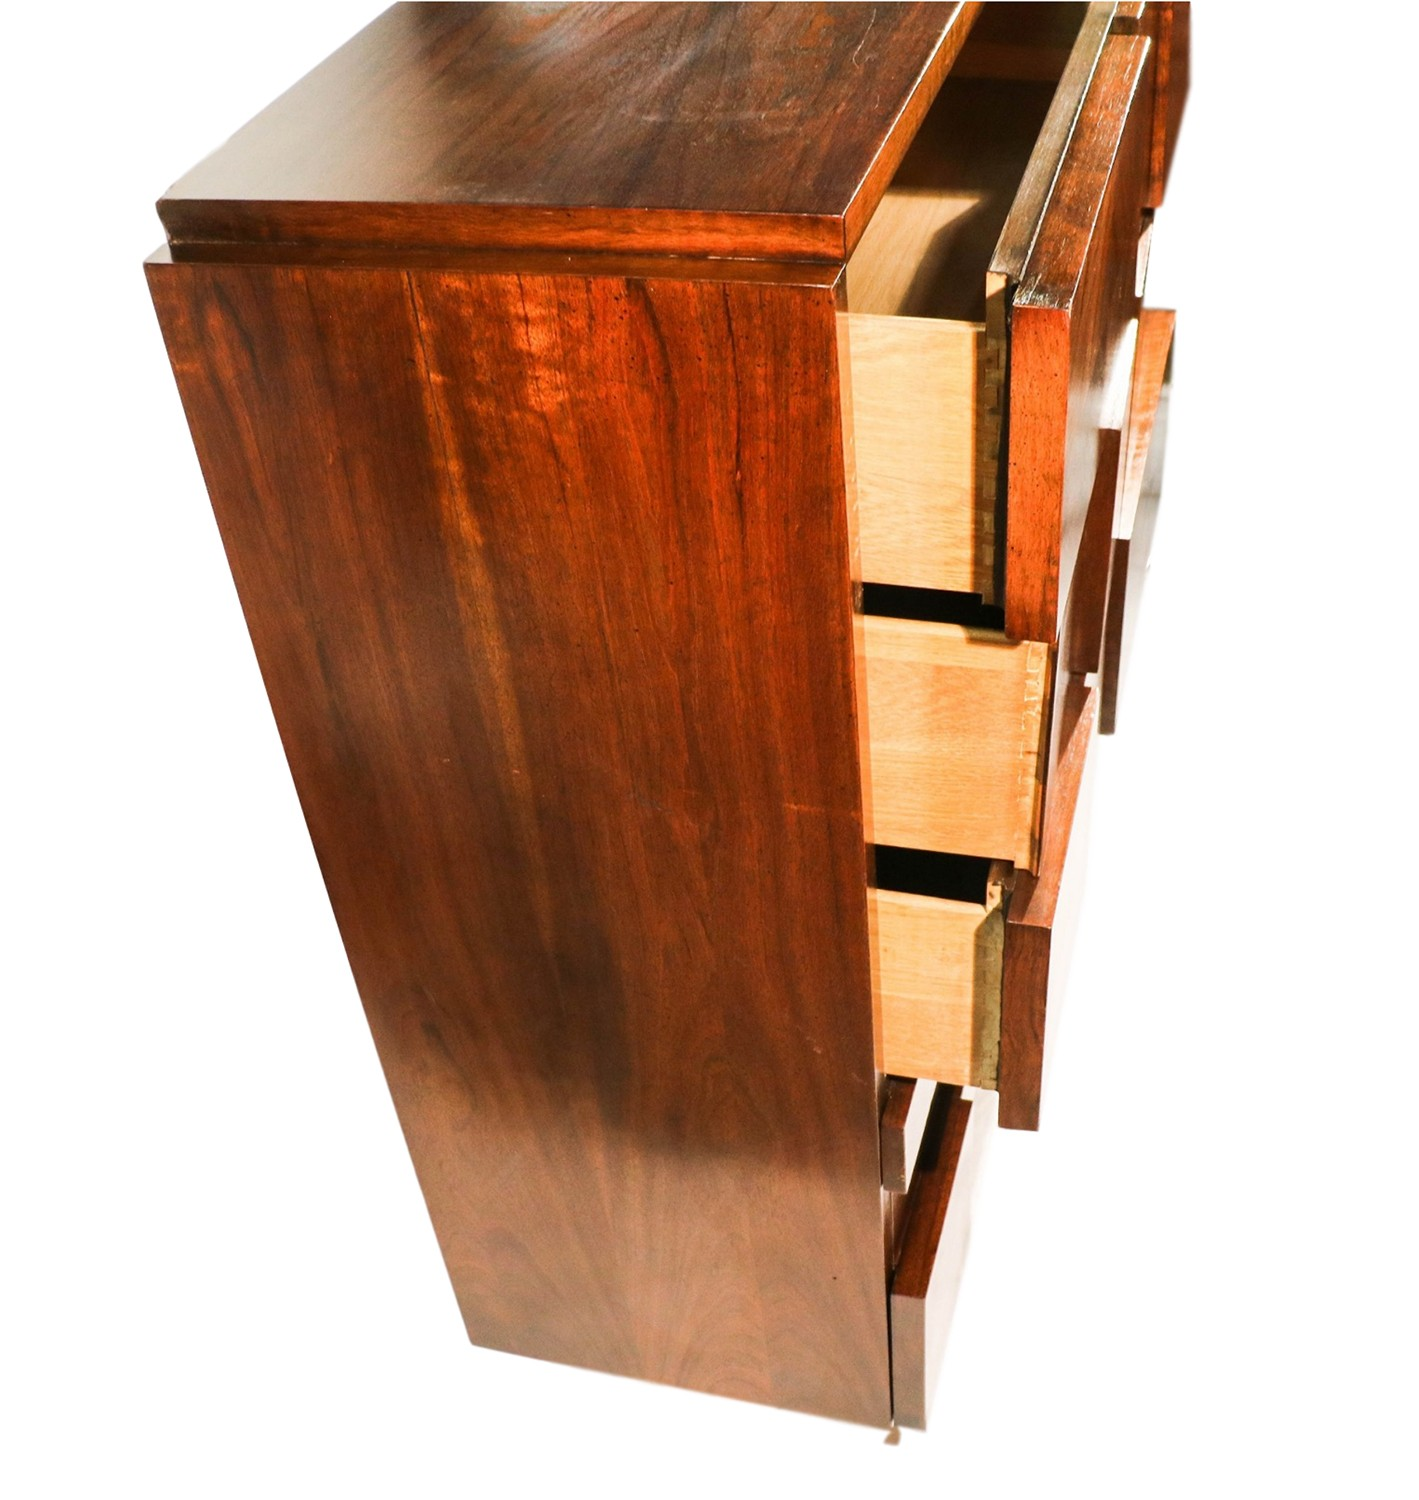 kitchen drawers com home of chest amazon ameriwood julian espresso dining dp drawer media highboy